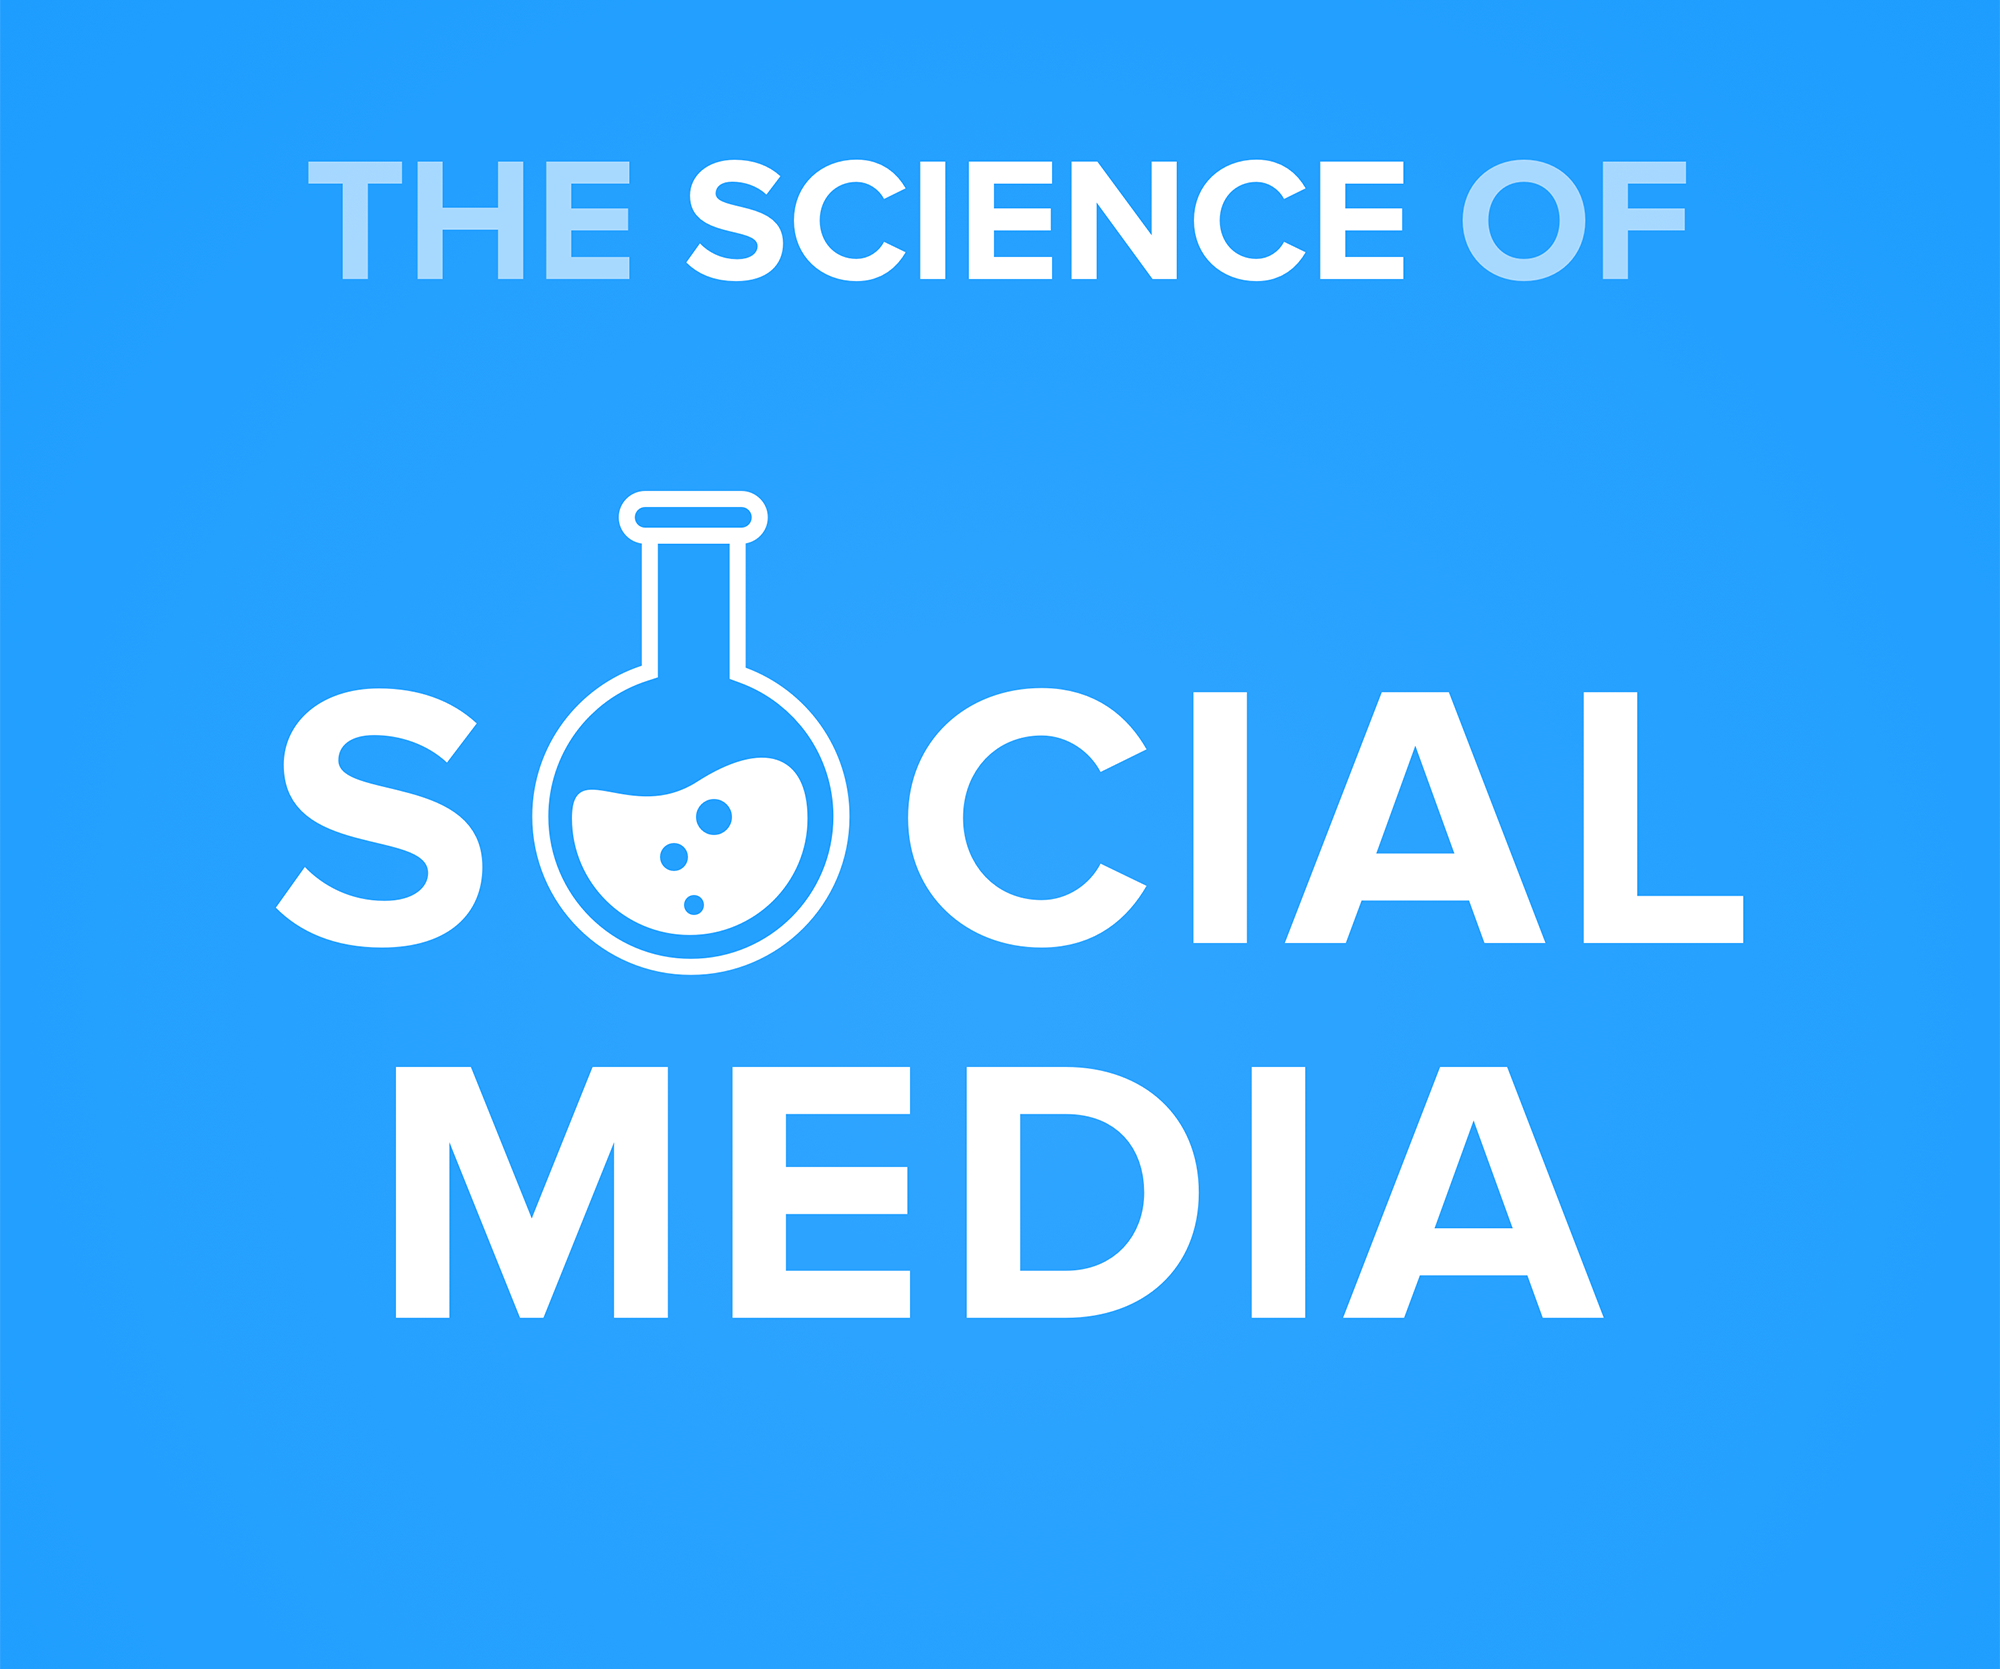 A photo of the Buffer Podcast, The Science of Social Media, logo